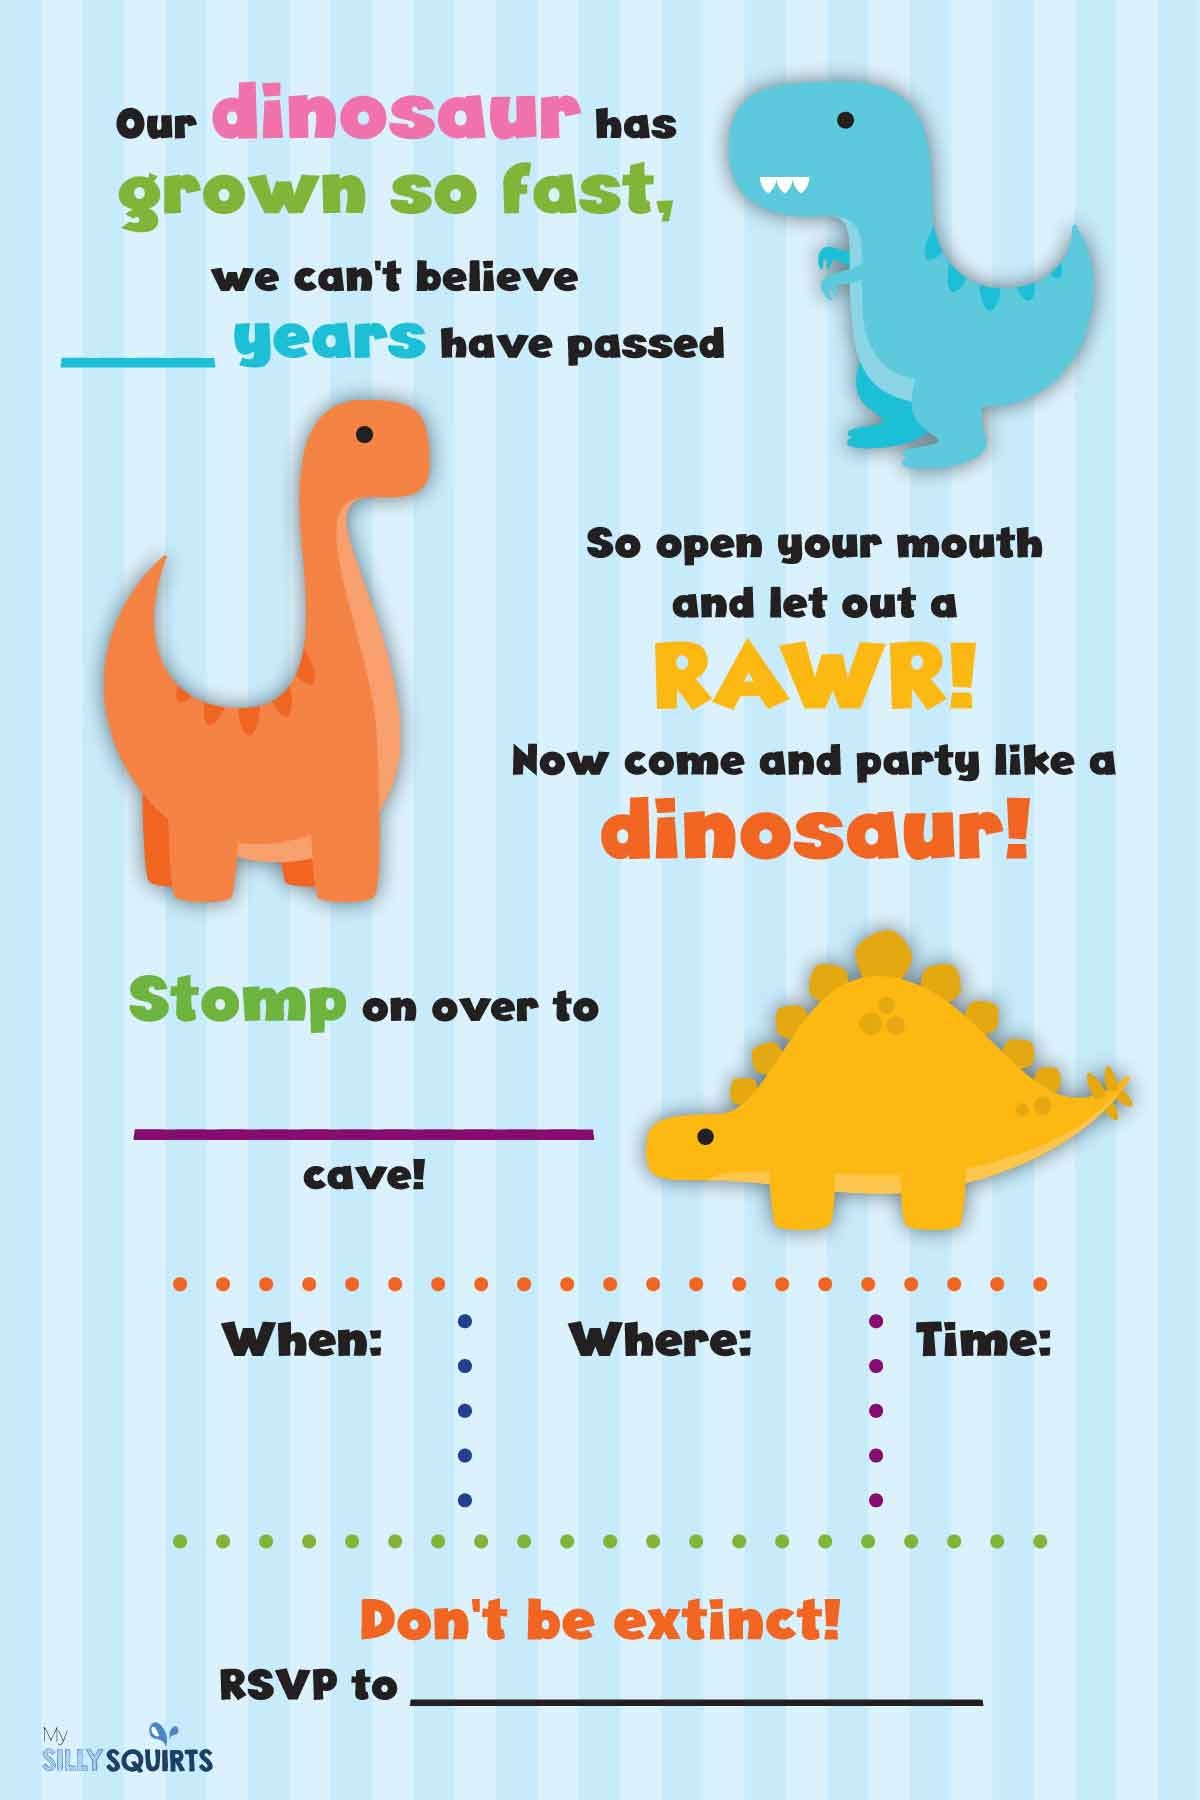 Rawr! Free Dinosaur Birthday Party Printables | My Silly Squirts - Free Printable Dinosaur Birthday Invitations